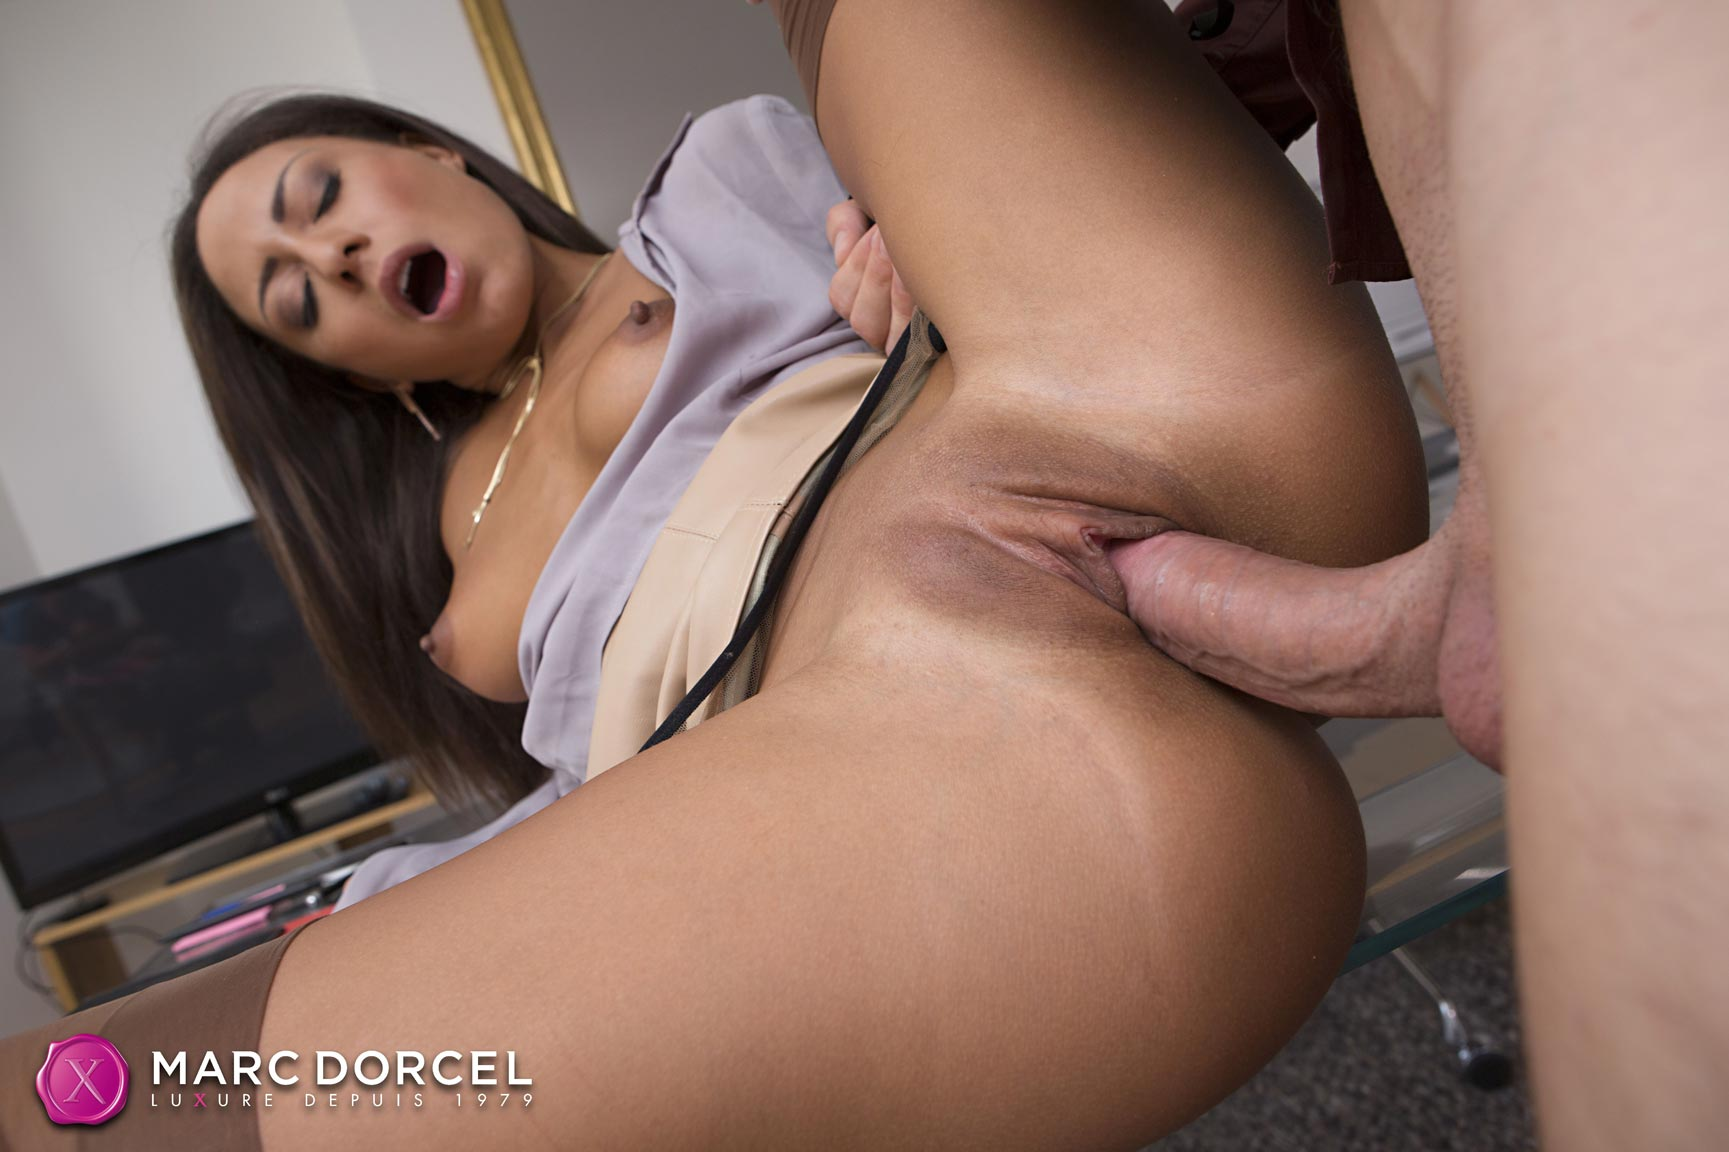 Euro babe cassie del isla gets dp - 1 part 9